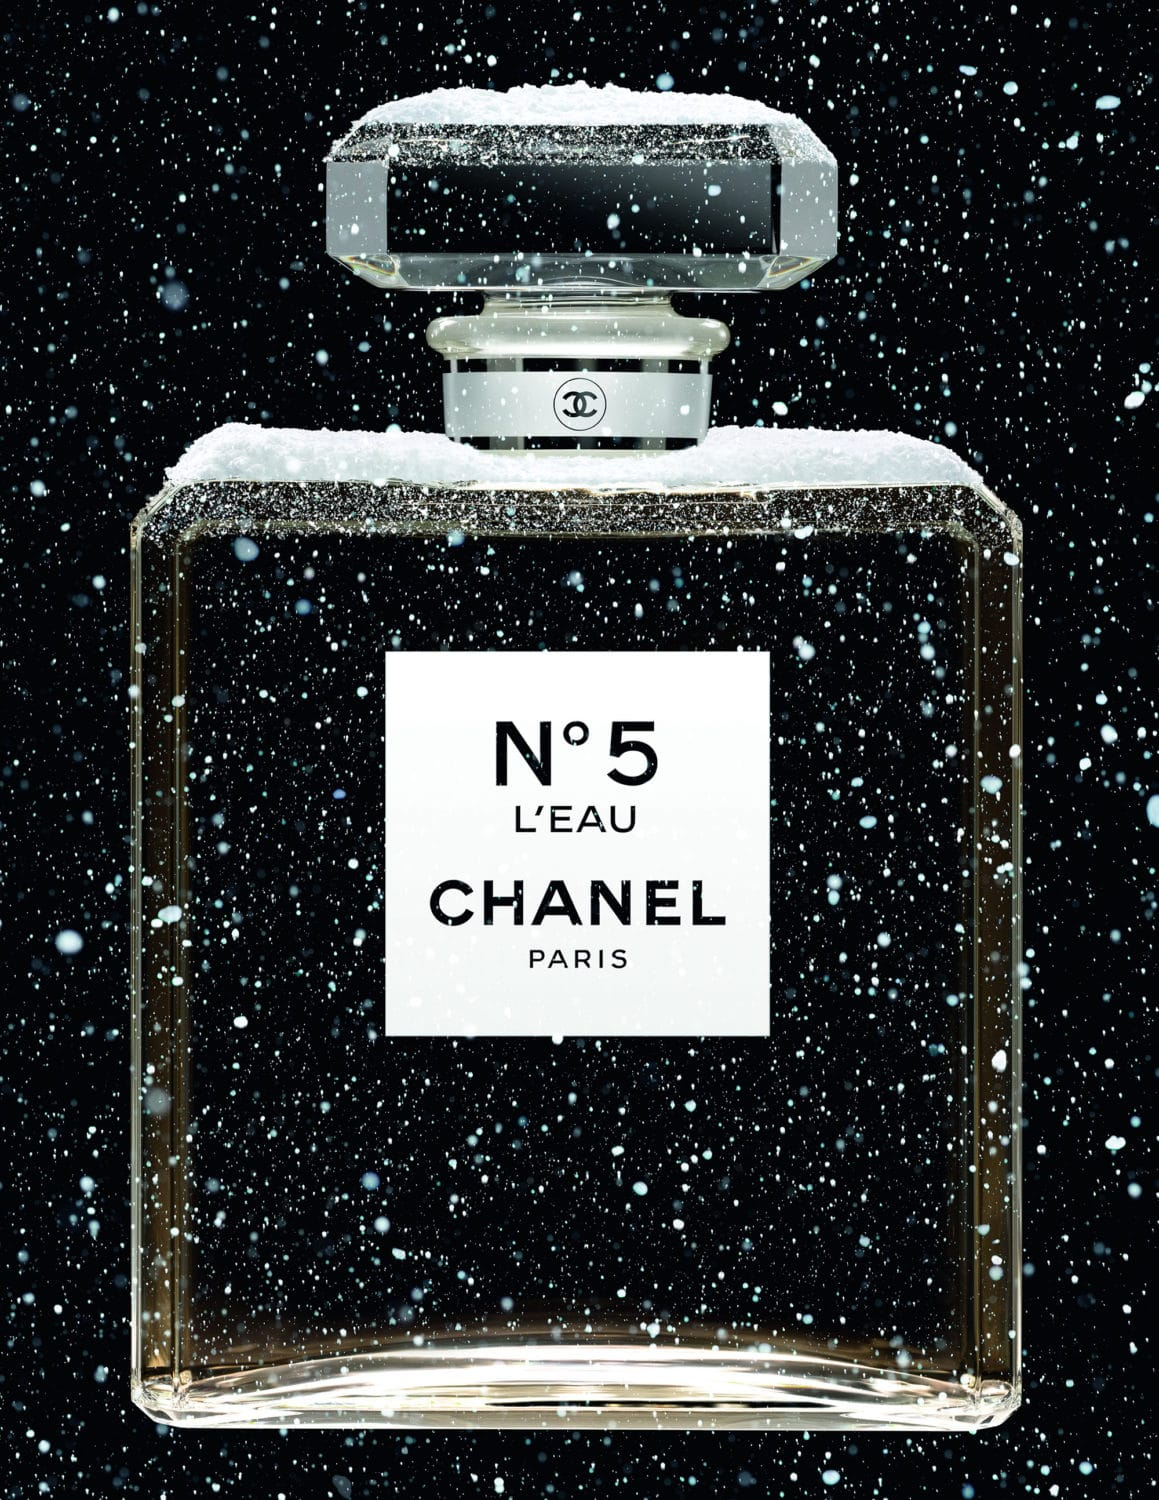 Chanel No 5 L'Eau con Lily-Rose Depp